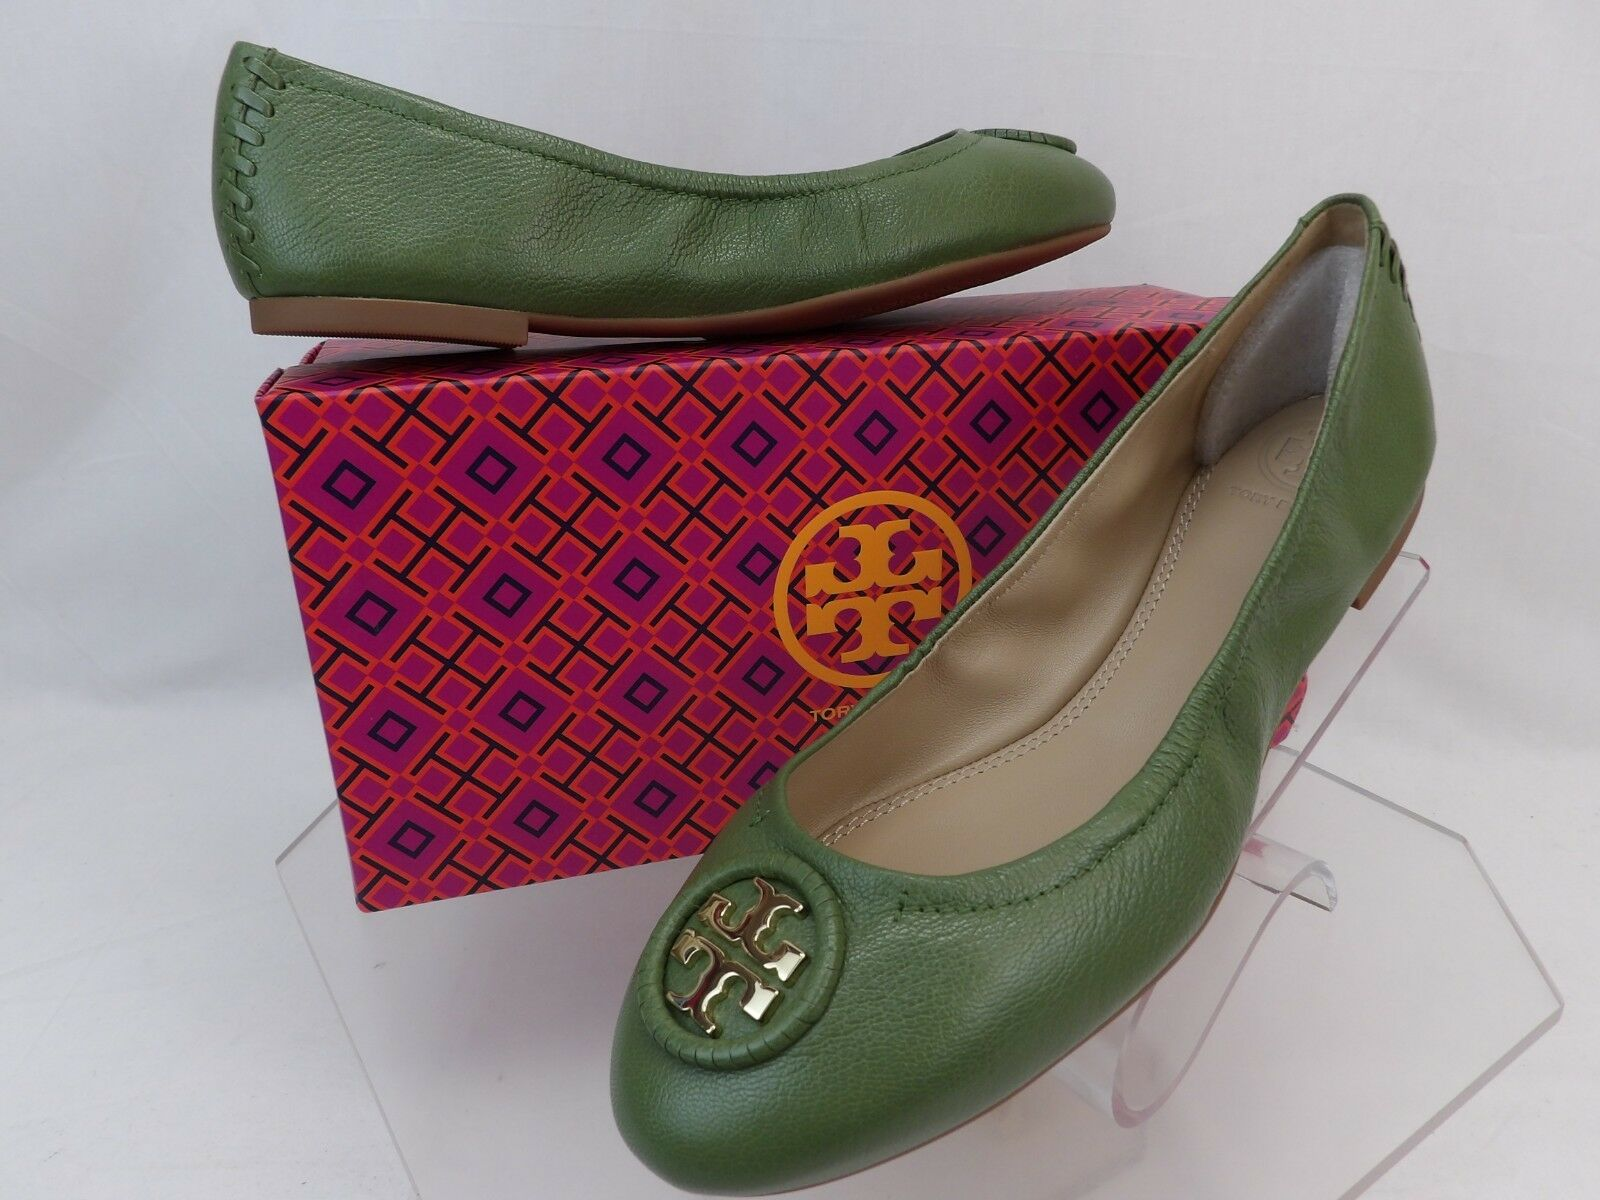 NIB TORY BURCH ALLIE DAPHNE TUMBLED LEATHER LEATHER LEATHER gold TONE REVA BALLET FLATS 8.5 bb5117